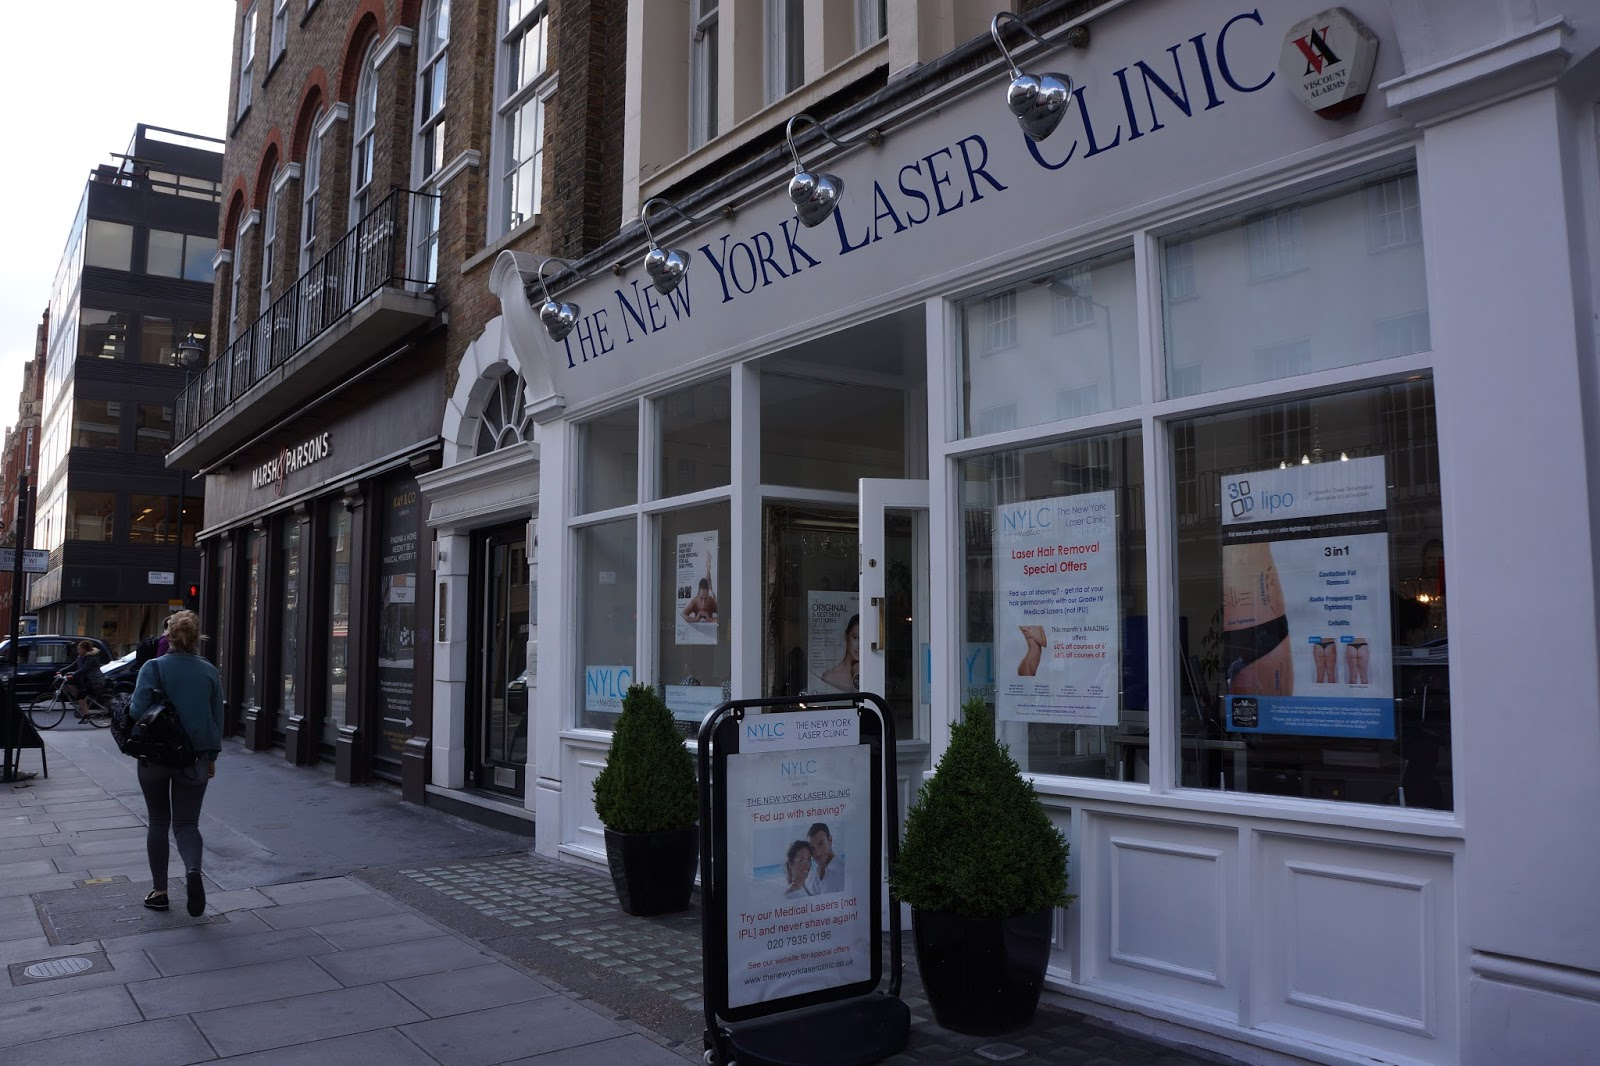 new york laser clinic baker street